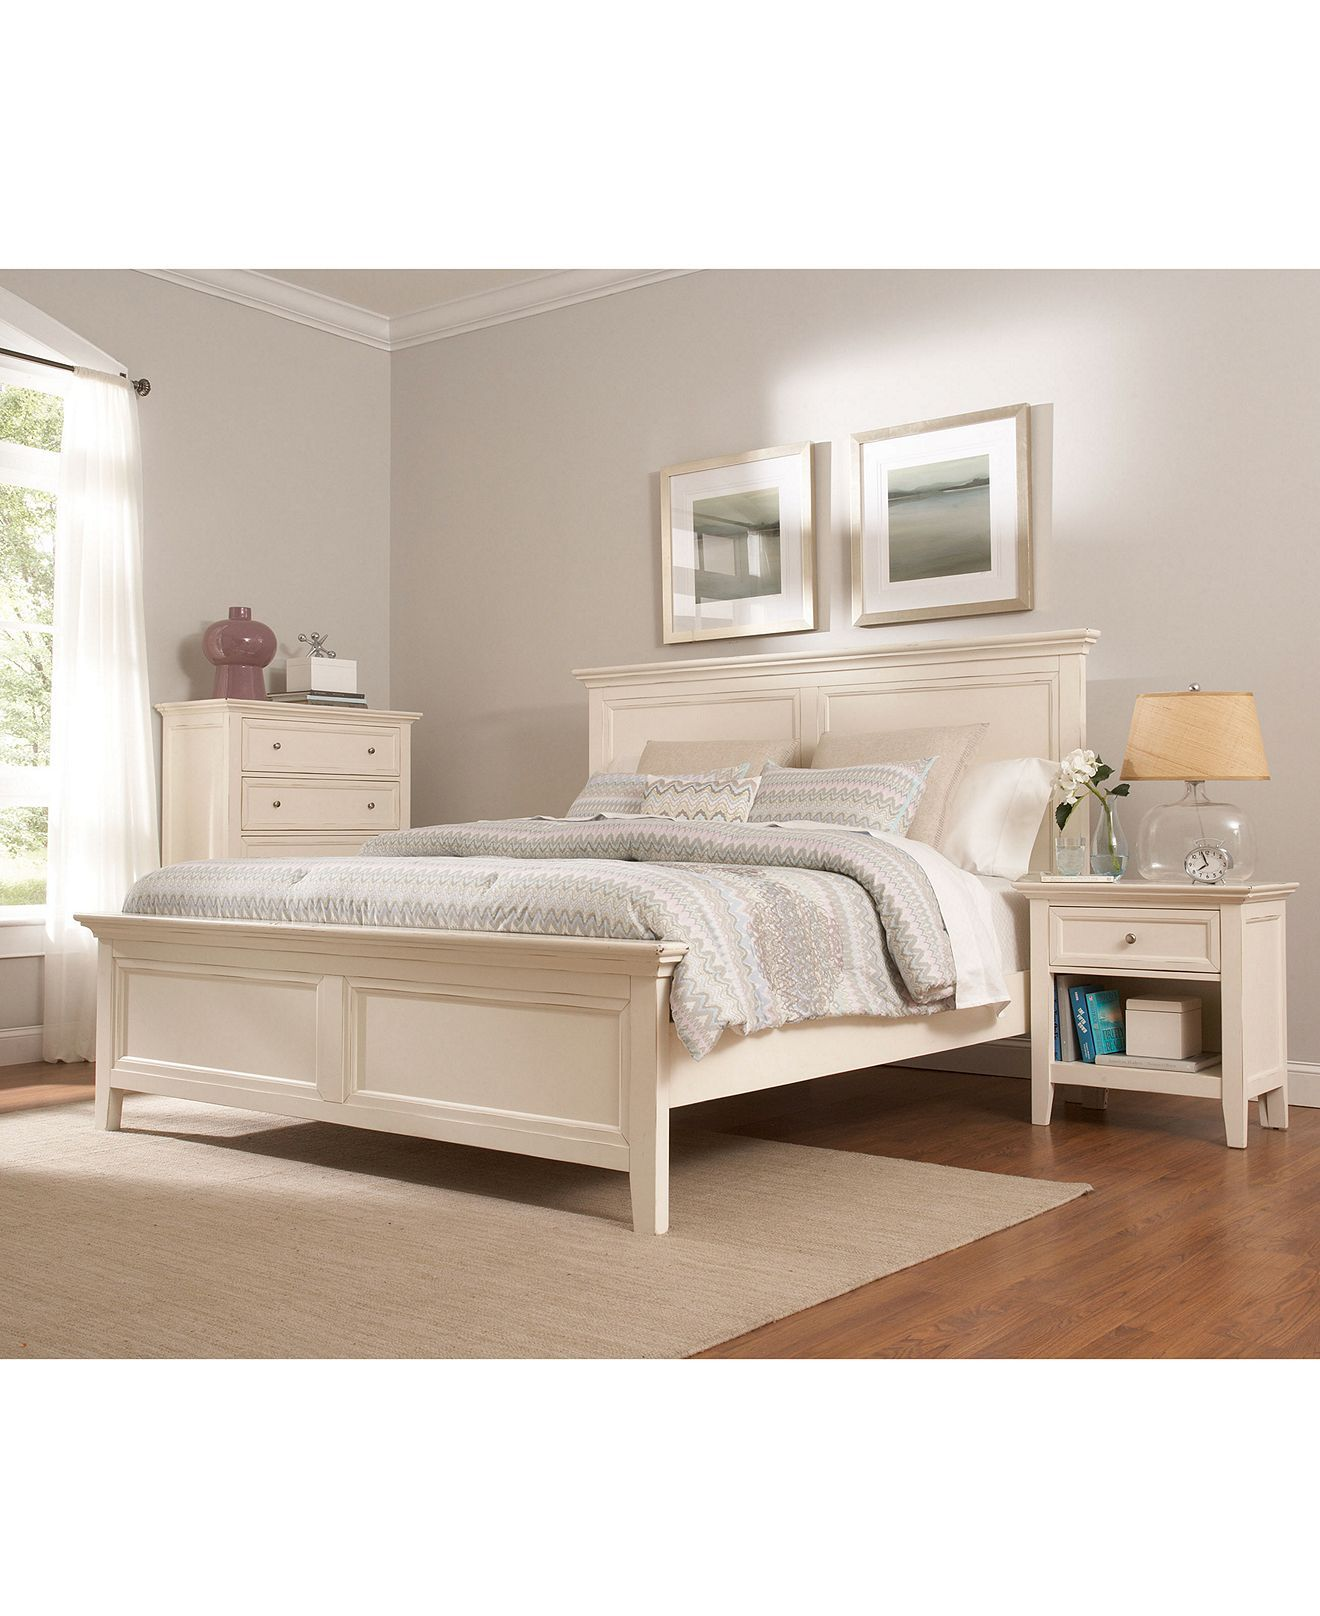 Awesome Sanibel Bedroom Furniture Collection, Created For Macyu0027s